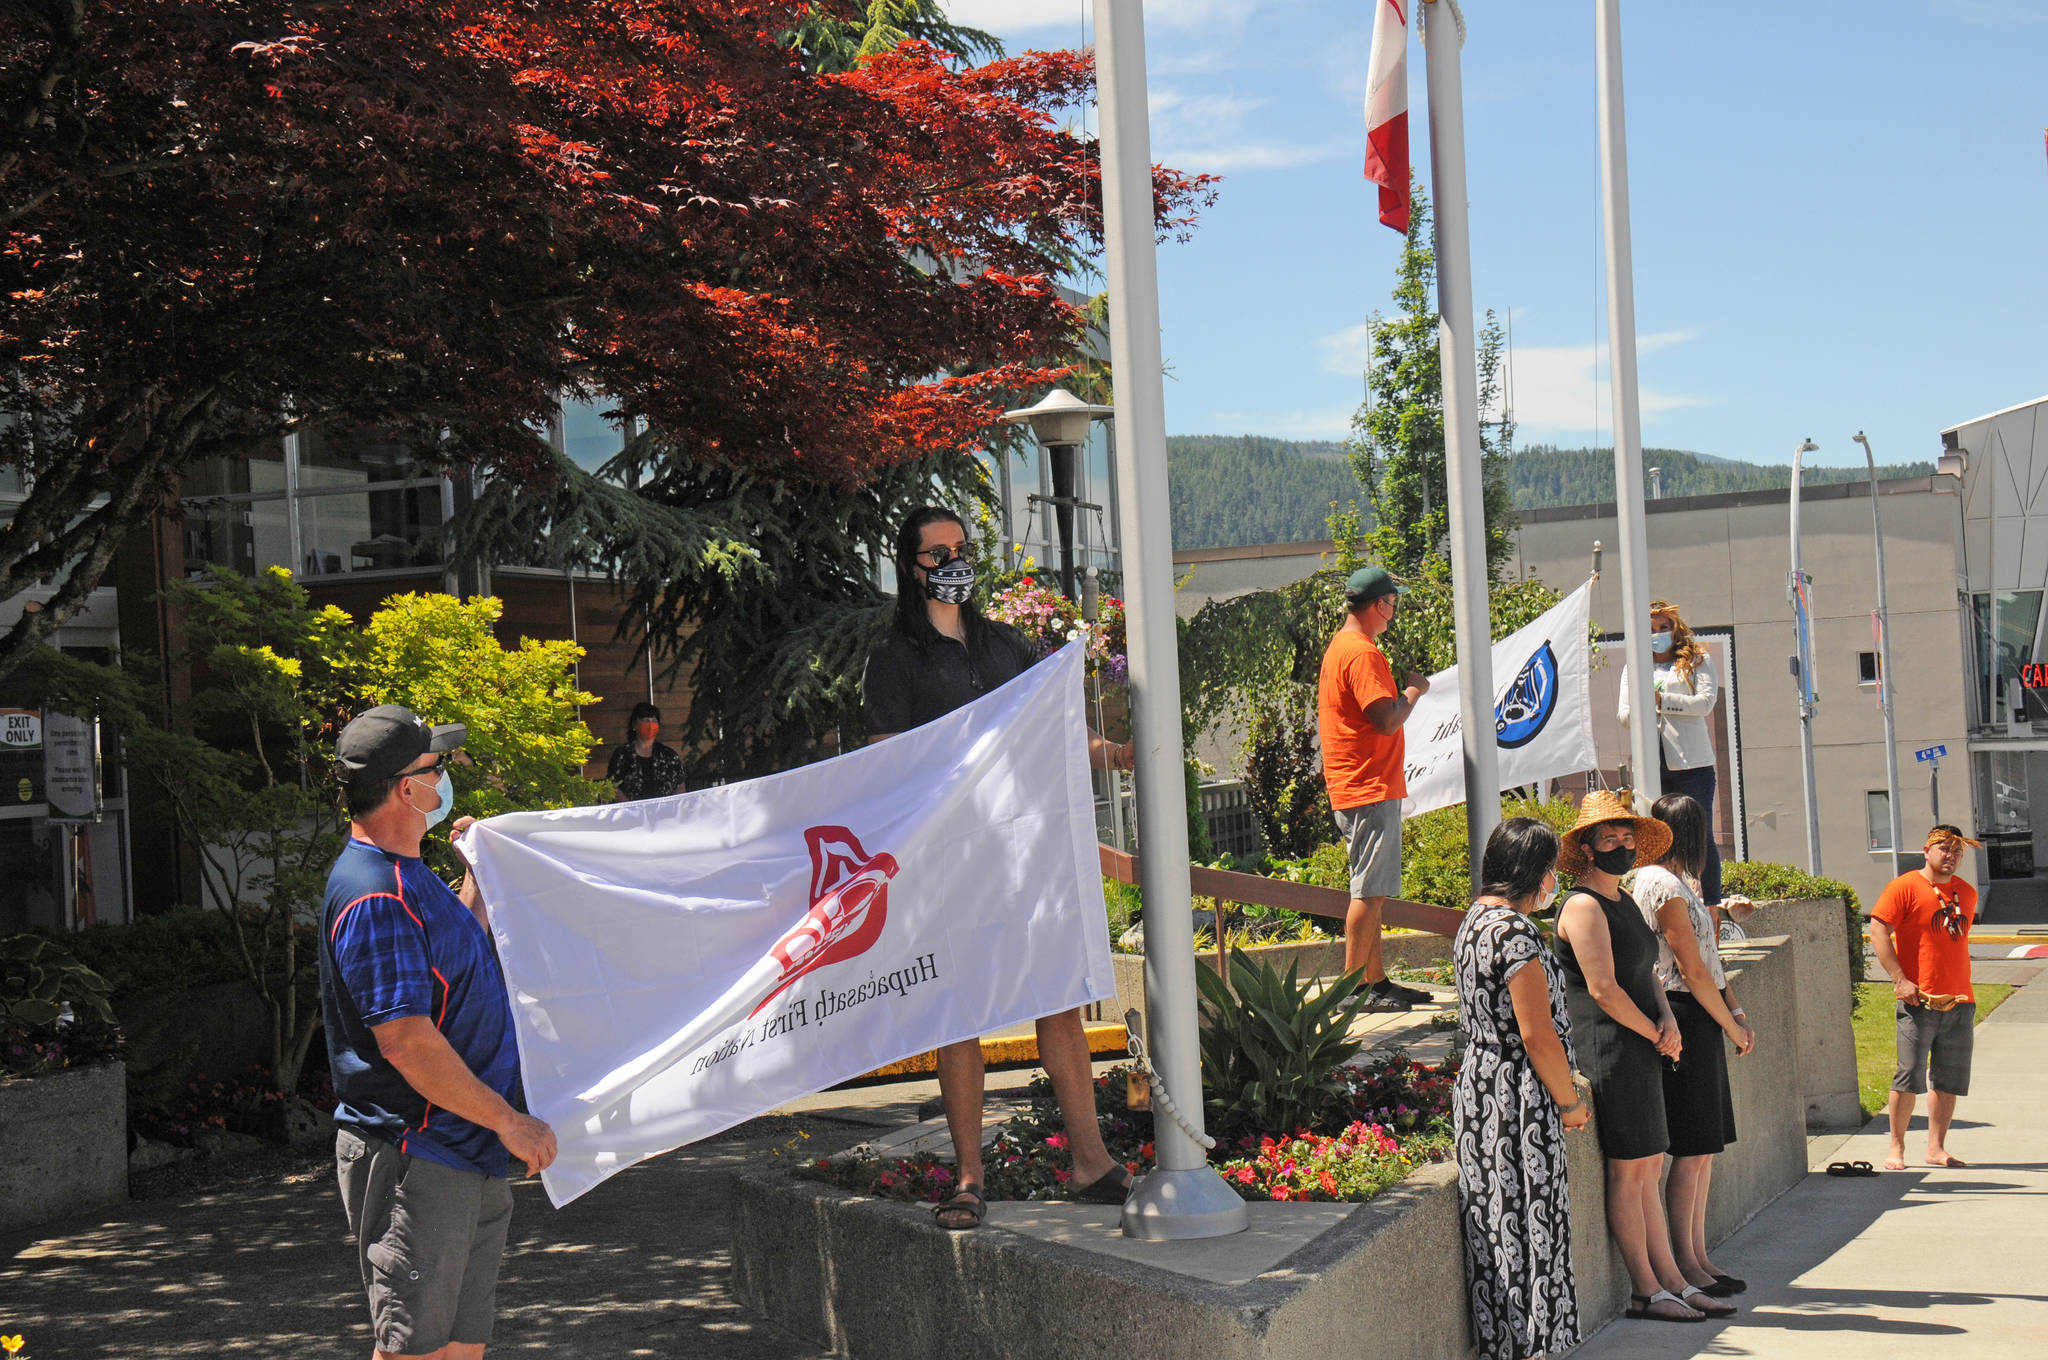 CELEBRATING INDIGENOUS PEOPLES DAY Council members and witnesses from the Hupacasath First Nation, left, and Tseshaht First Nation, right, prepare to raise their respective flags in front of Port Alberni City Hall on Monday, June 21, 2021. The flags will permanently fly as part of the city's reconciliation work. See more coverage from the flag raising ceremony on page A5. (SUSAN QUINN/ Alberni Valley News)